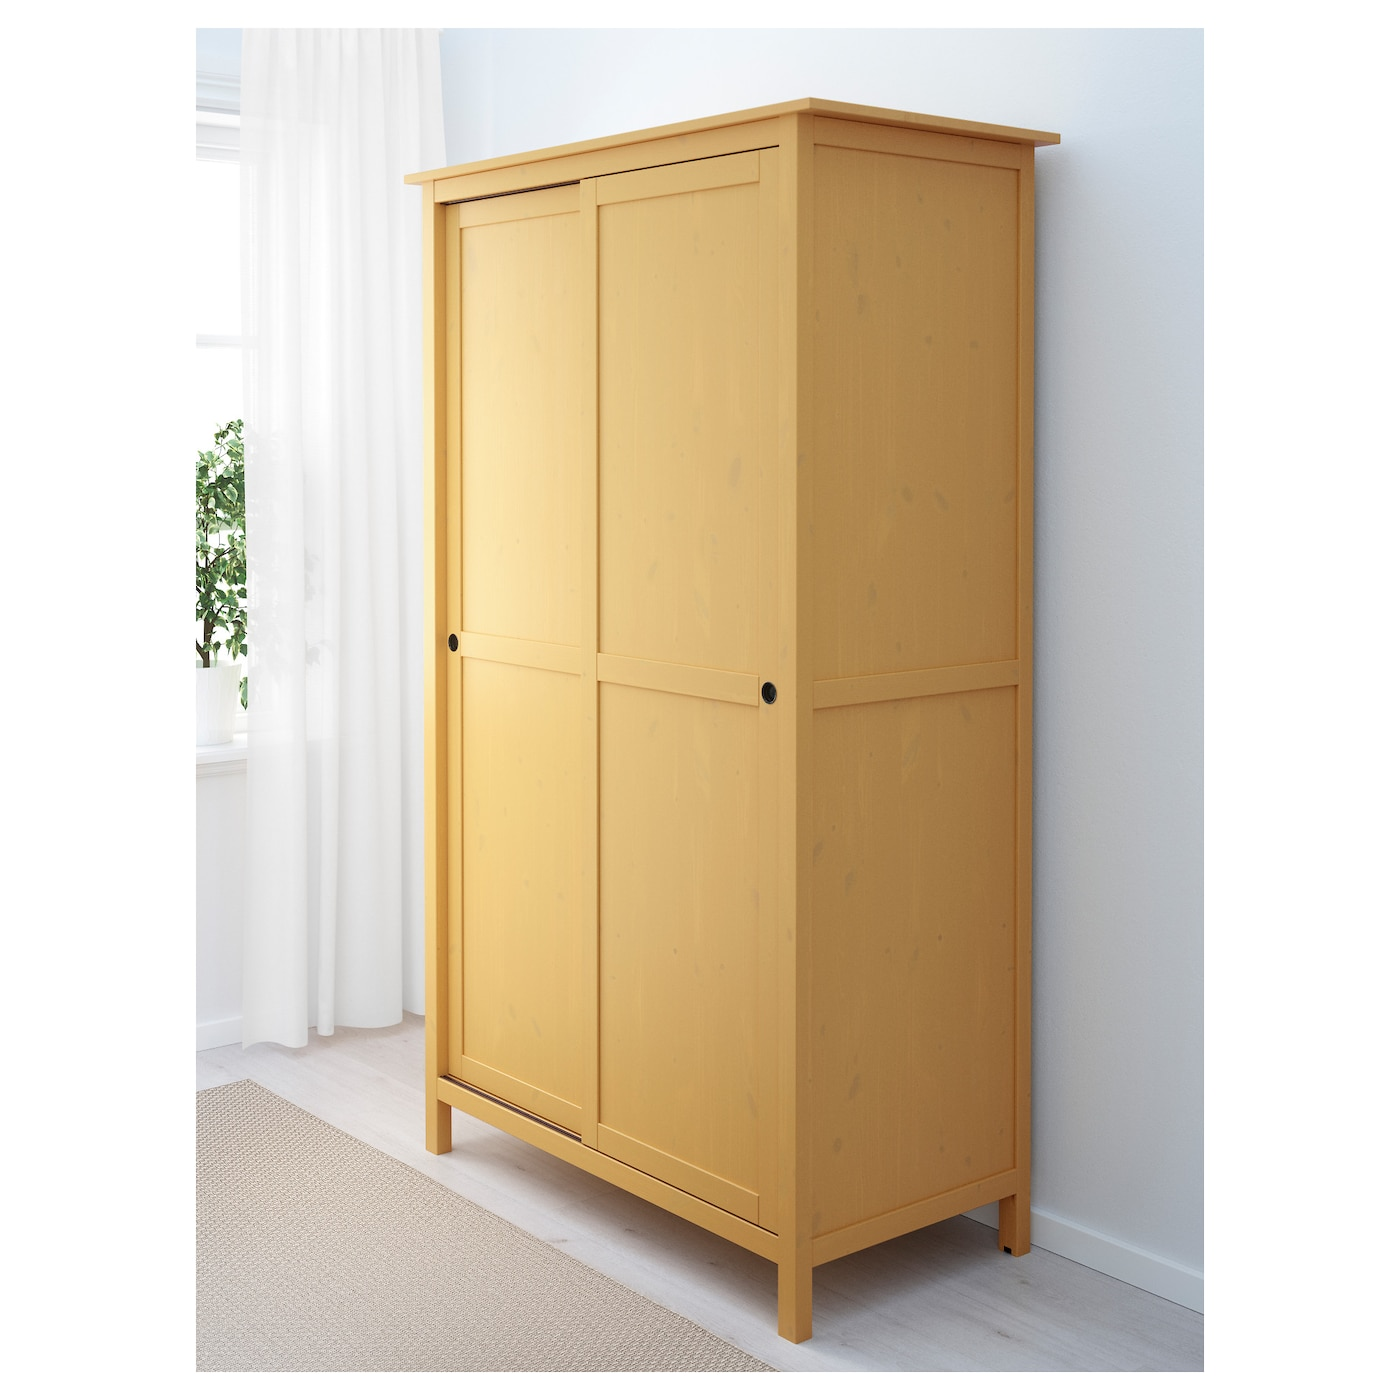 hemnes wardrobe with 2 sliding doors yellow 120 x 197 cm ikea. Black Bedroom Furniture Sets. Home Design Ideas